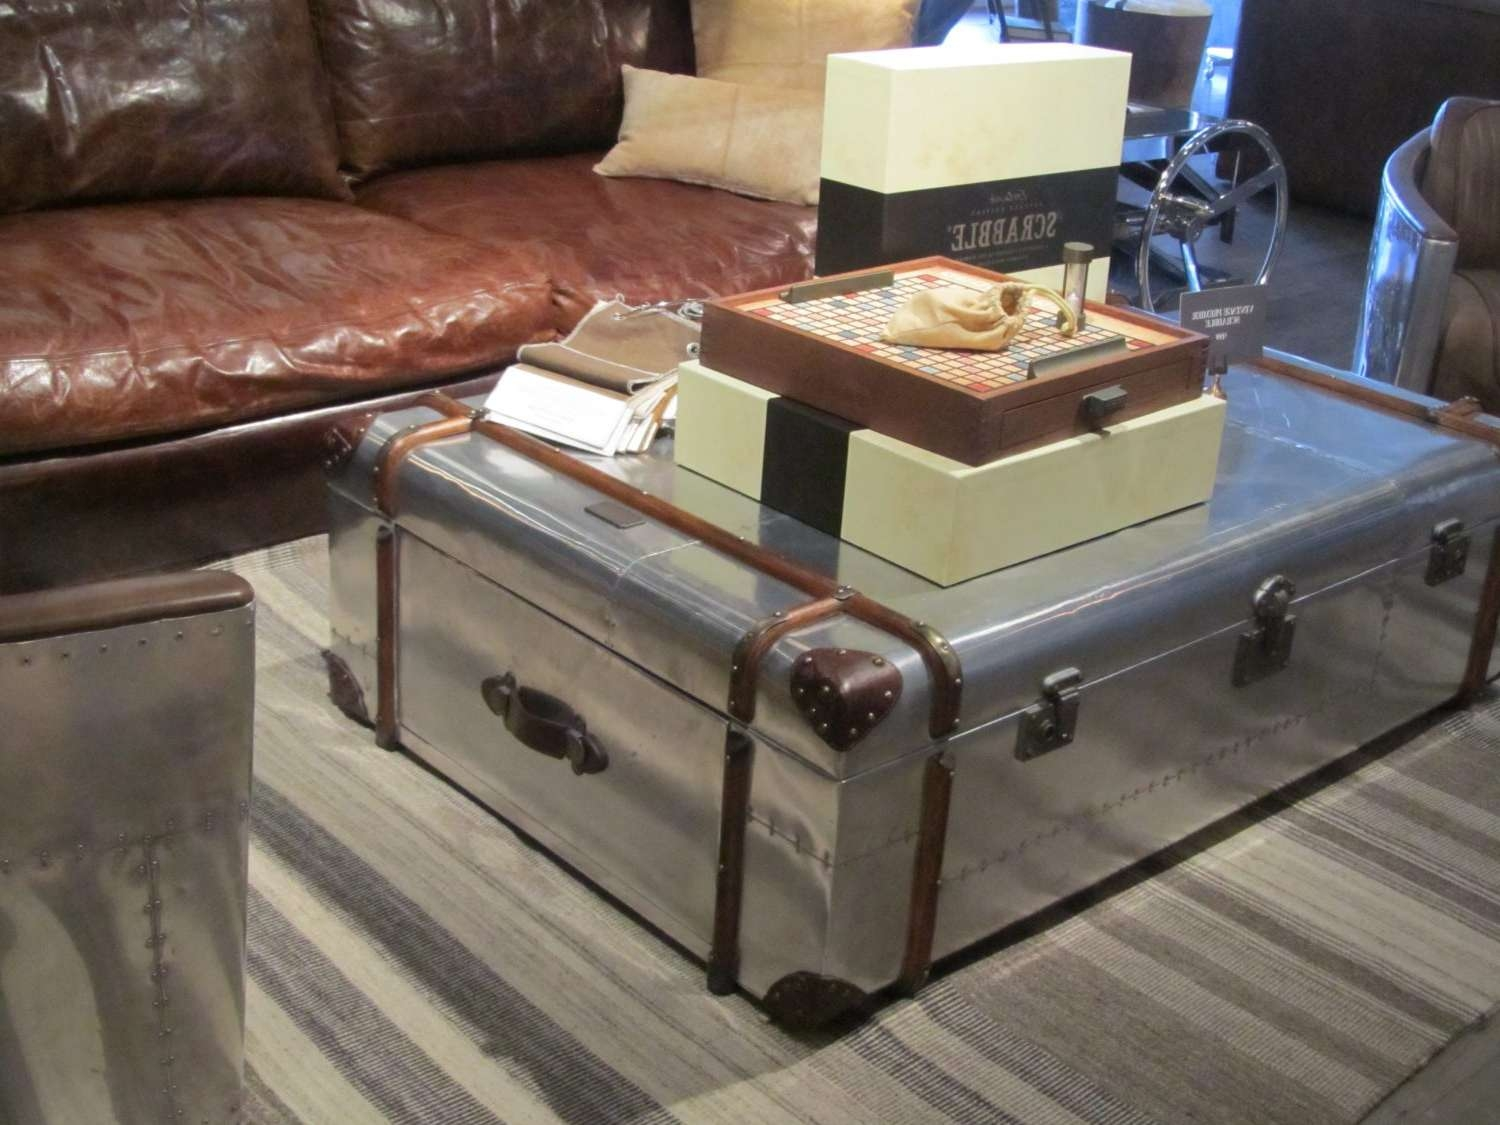 Storage Trunk Coffee Table, As The Secret Storage Intended For Well Liked Storage Trunk Coffee Tables (View 15 of 20)